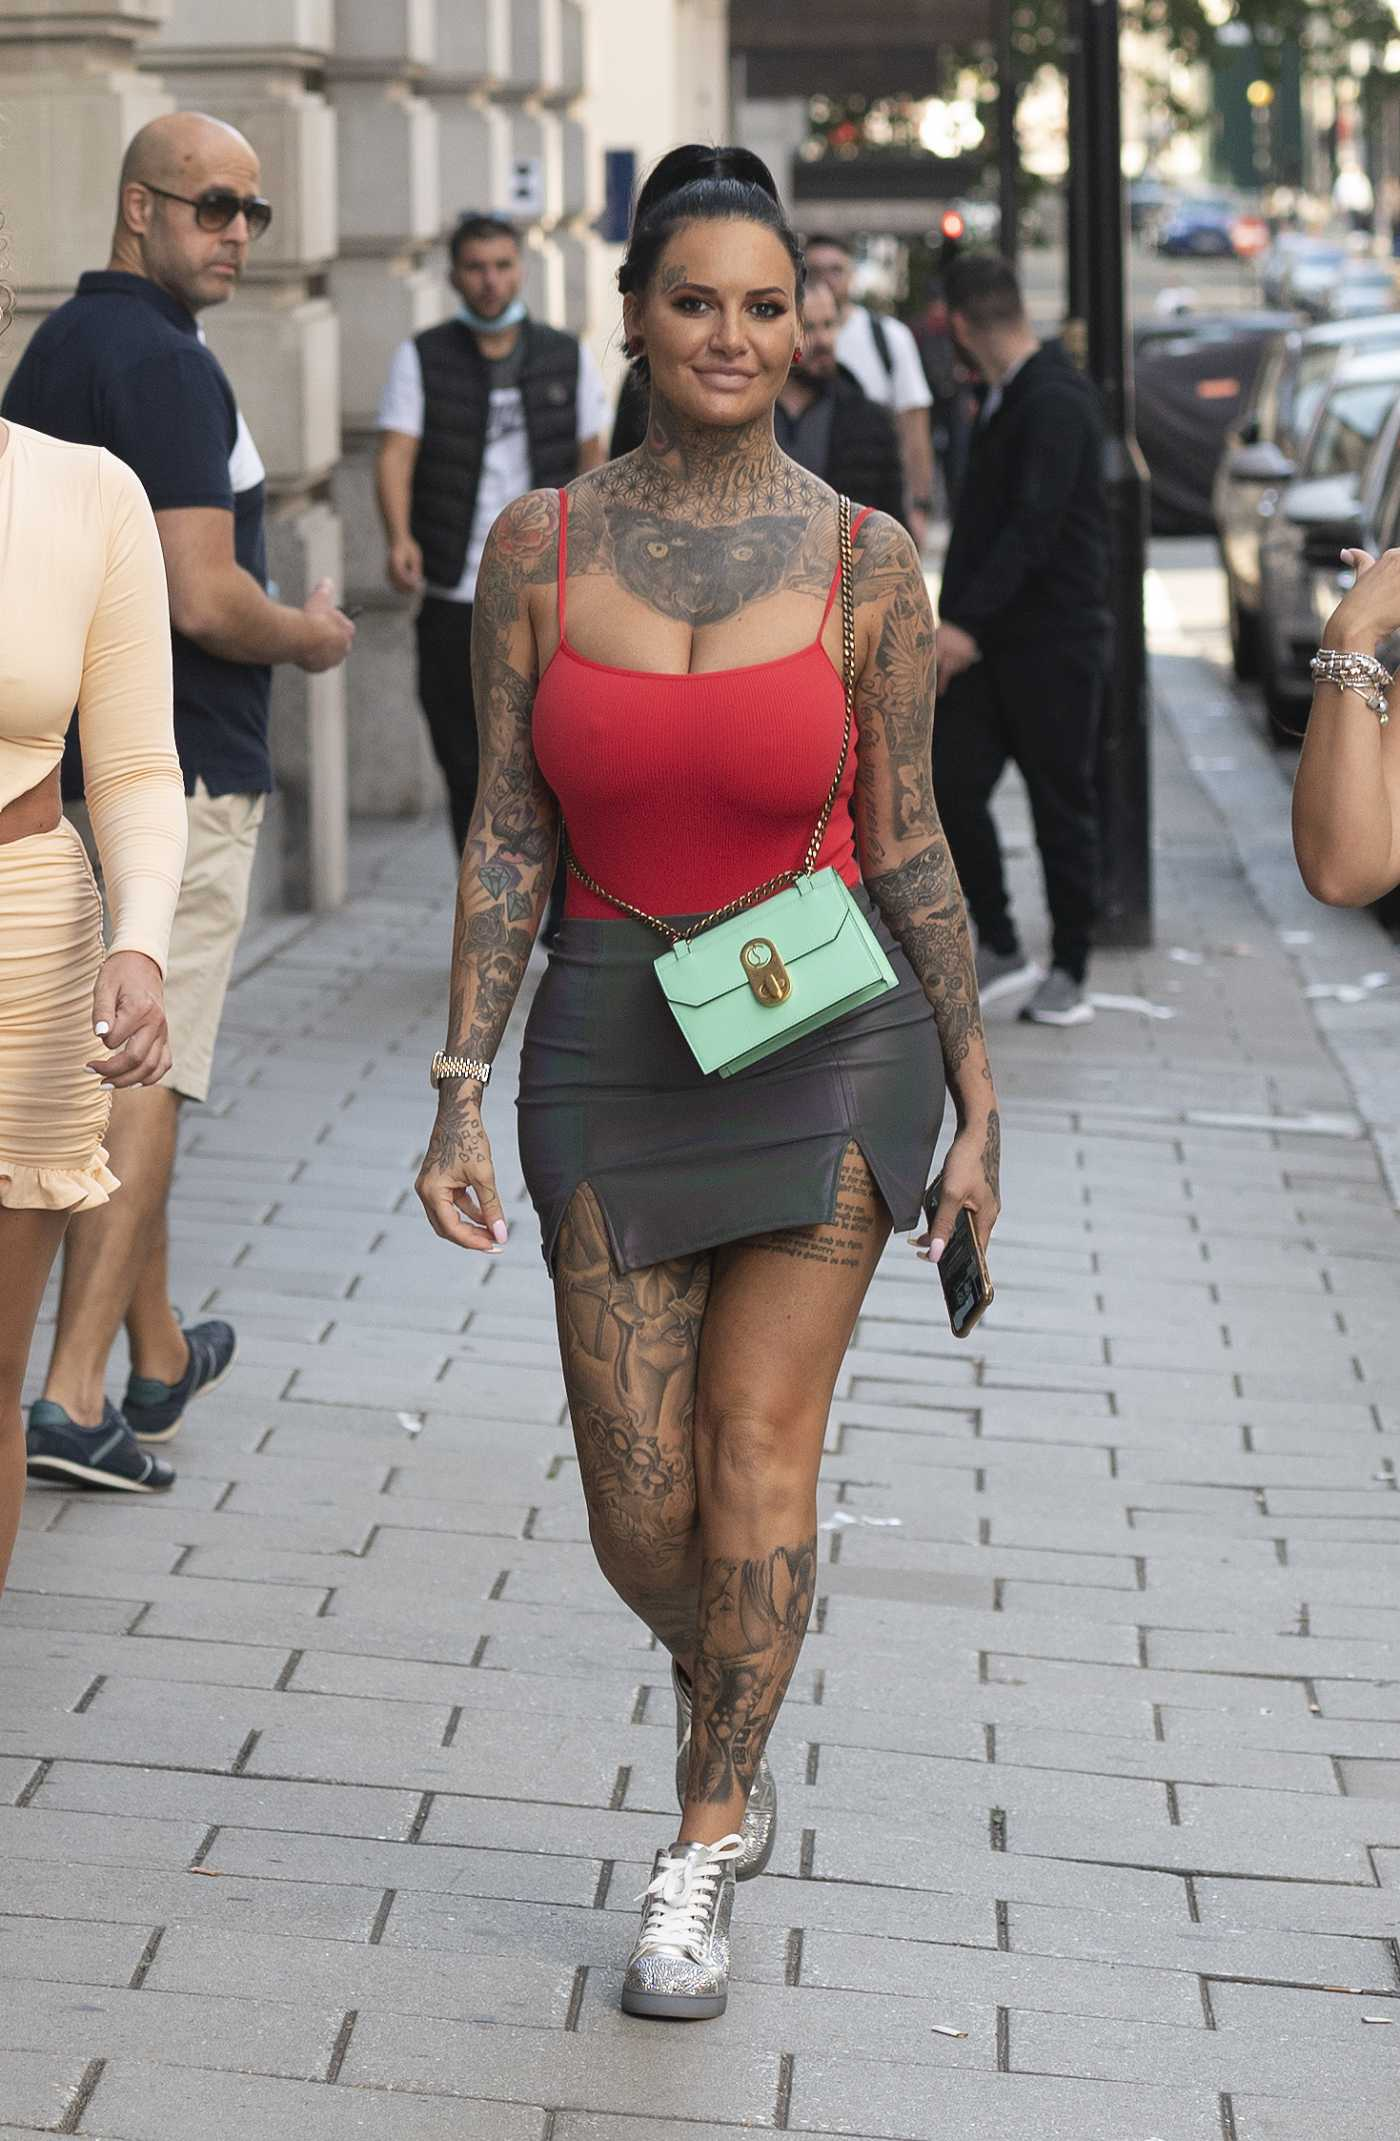 Jemma Lucy in a Red Top Heads Out for Lunch in Mayfair, London 09/13/2020